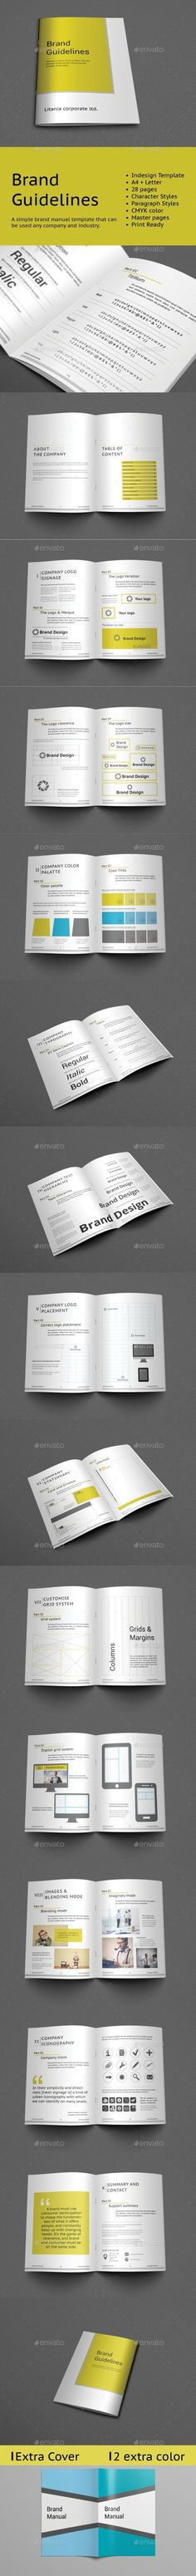 Brand Manual Template #design Buy Now http\/\/graphicrivernet - it manual template